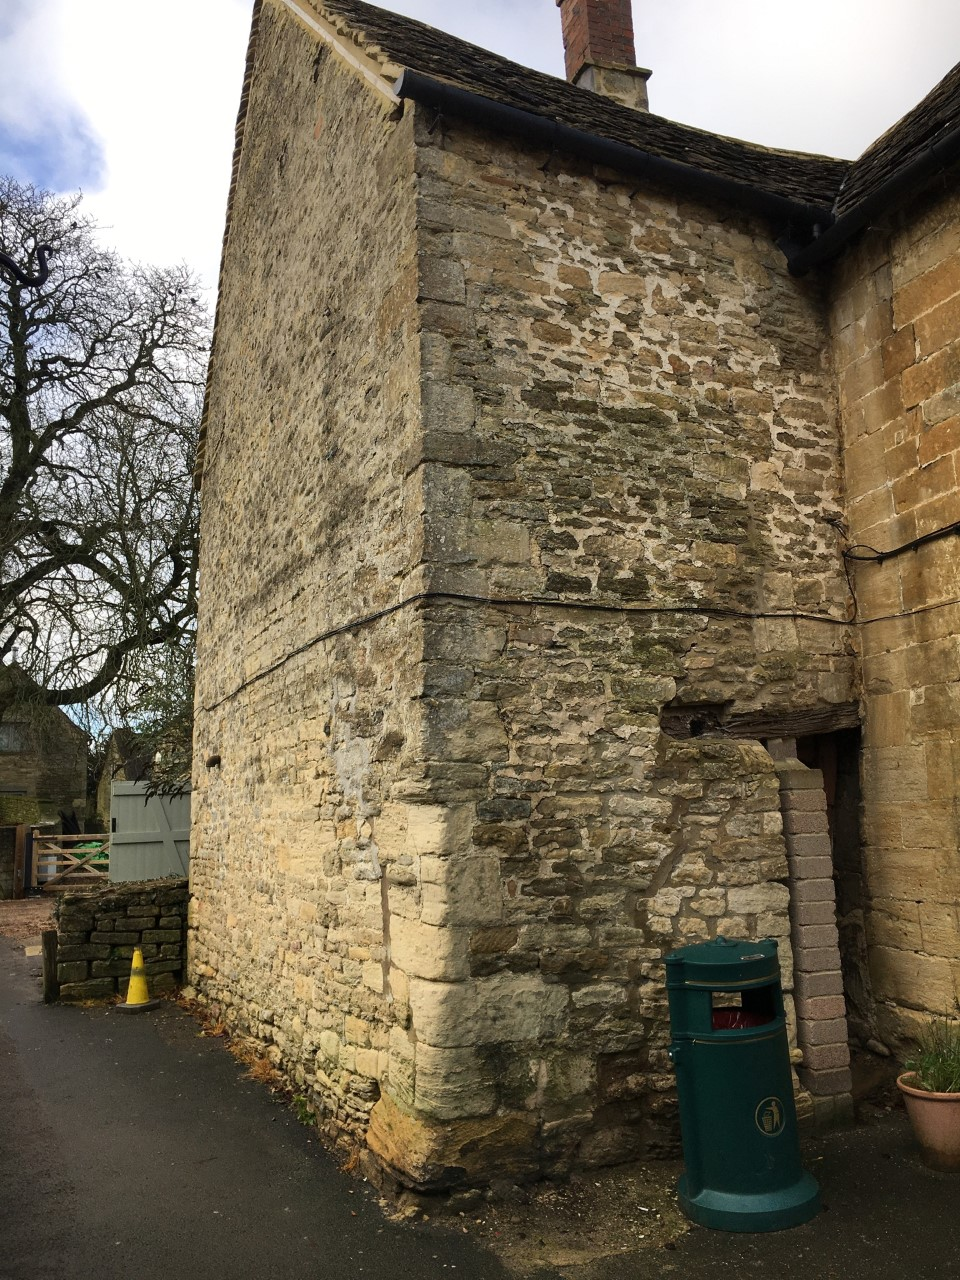 View from the Square of the side wall and path up towards the church (December 2019)